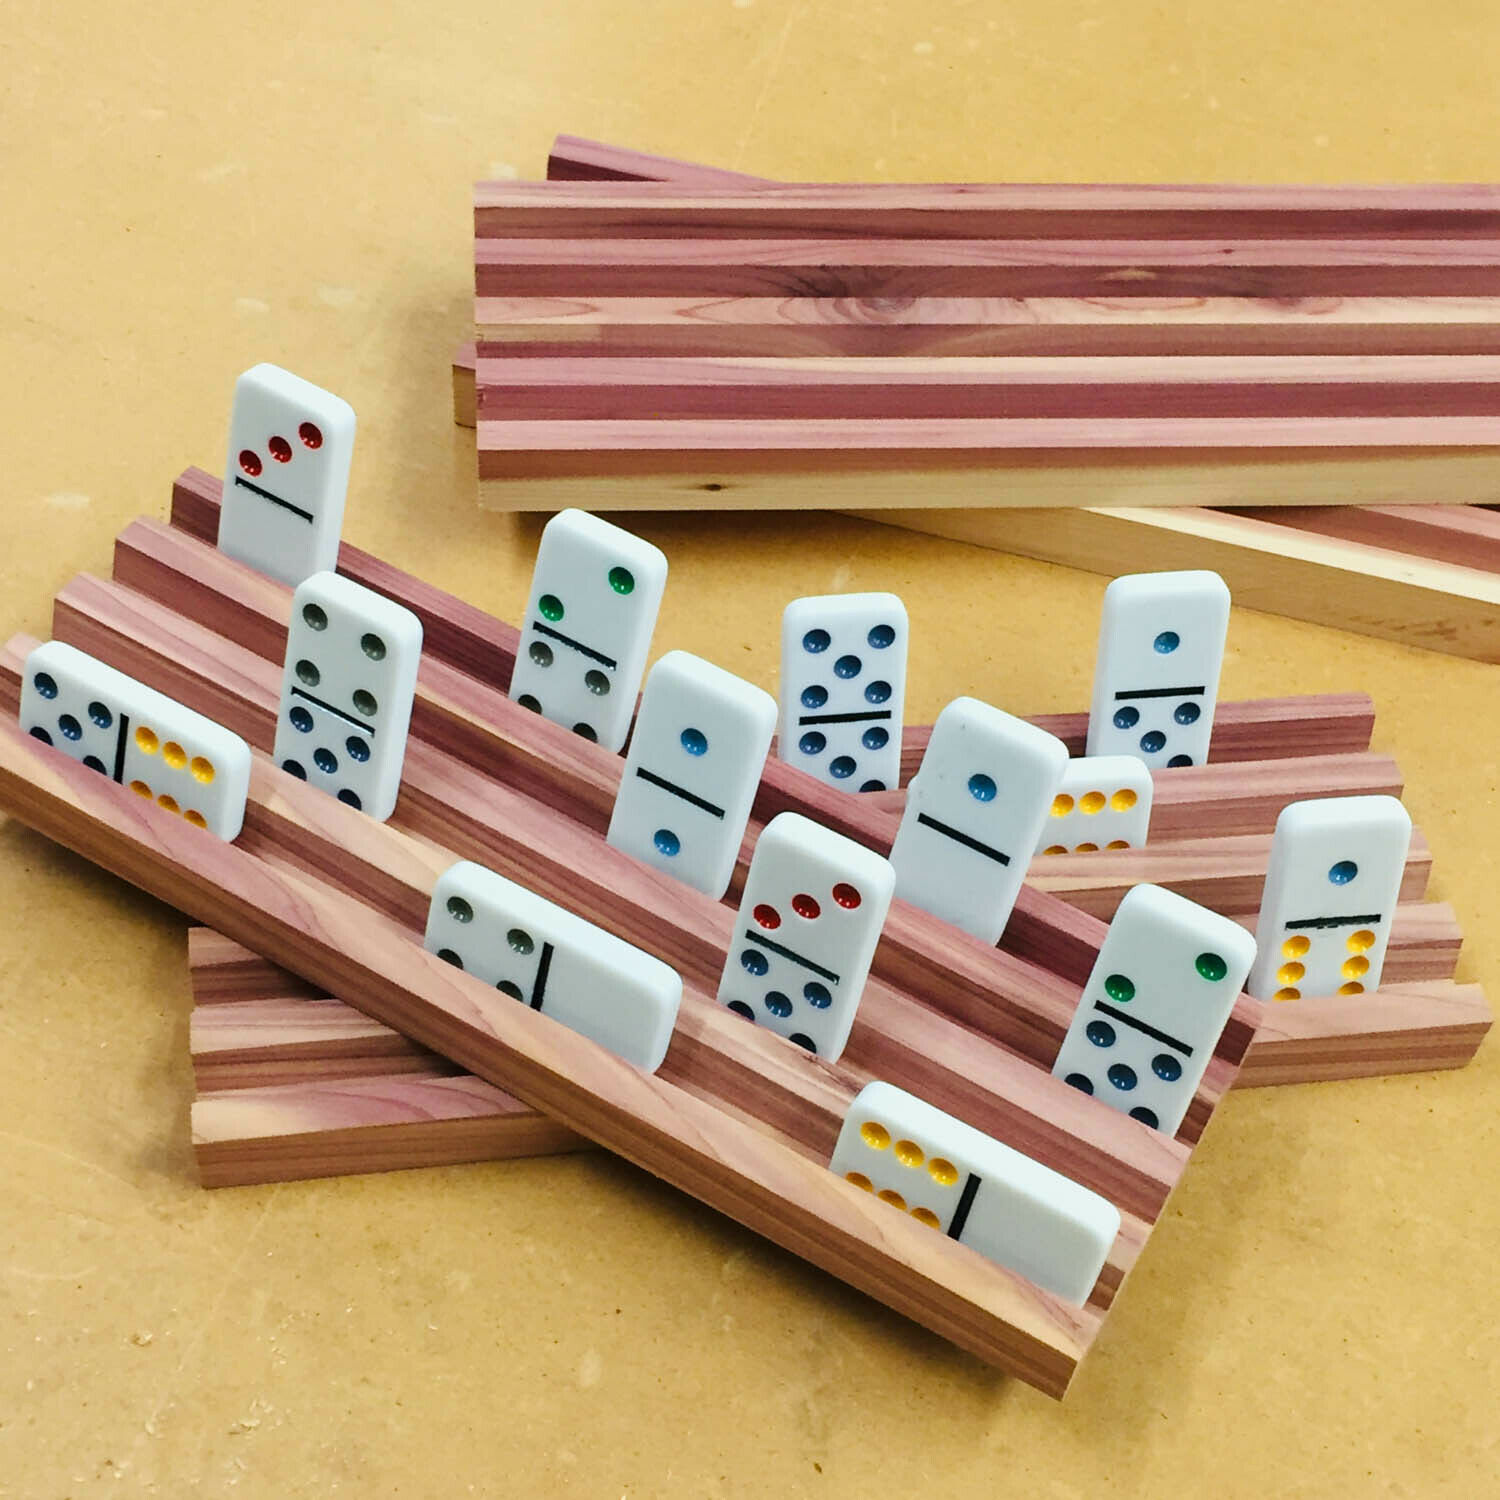 8 HANDMADE SOUTHERN rot CEDAR DOMINO HOLDERS MEXICAN TRAIN 4 ROWS EACH RACK NEW